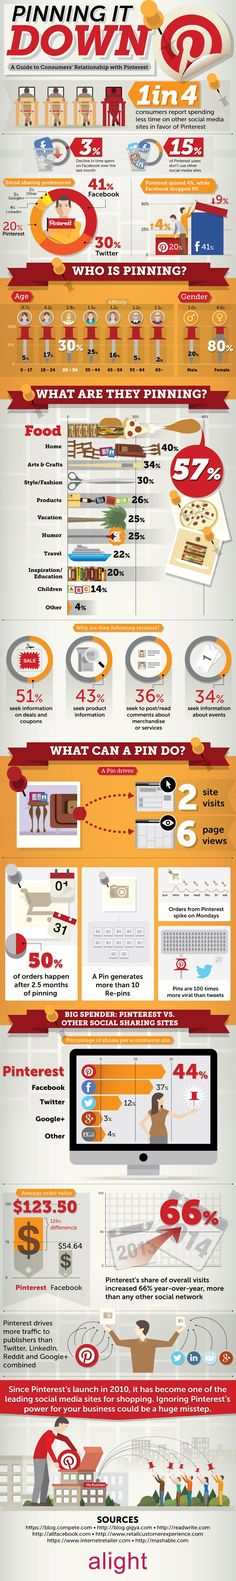 La incorporación de #Pinterest en tu estrategia de Marketing #infografia #infographic #marketing